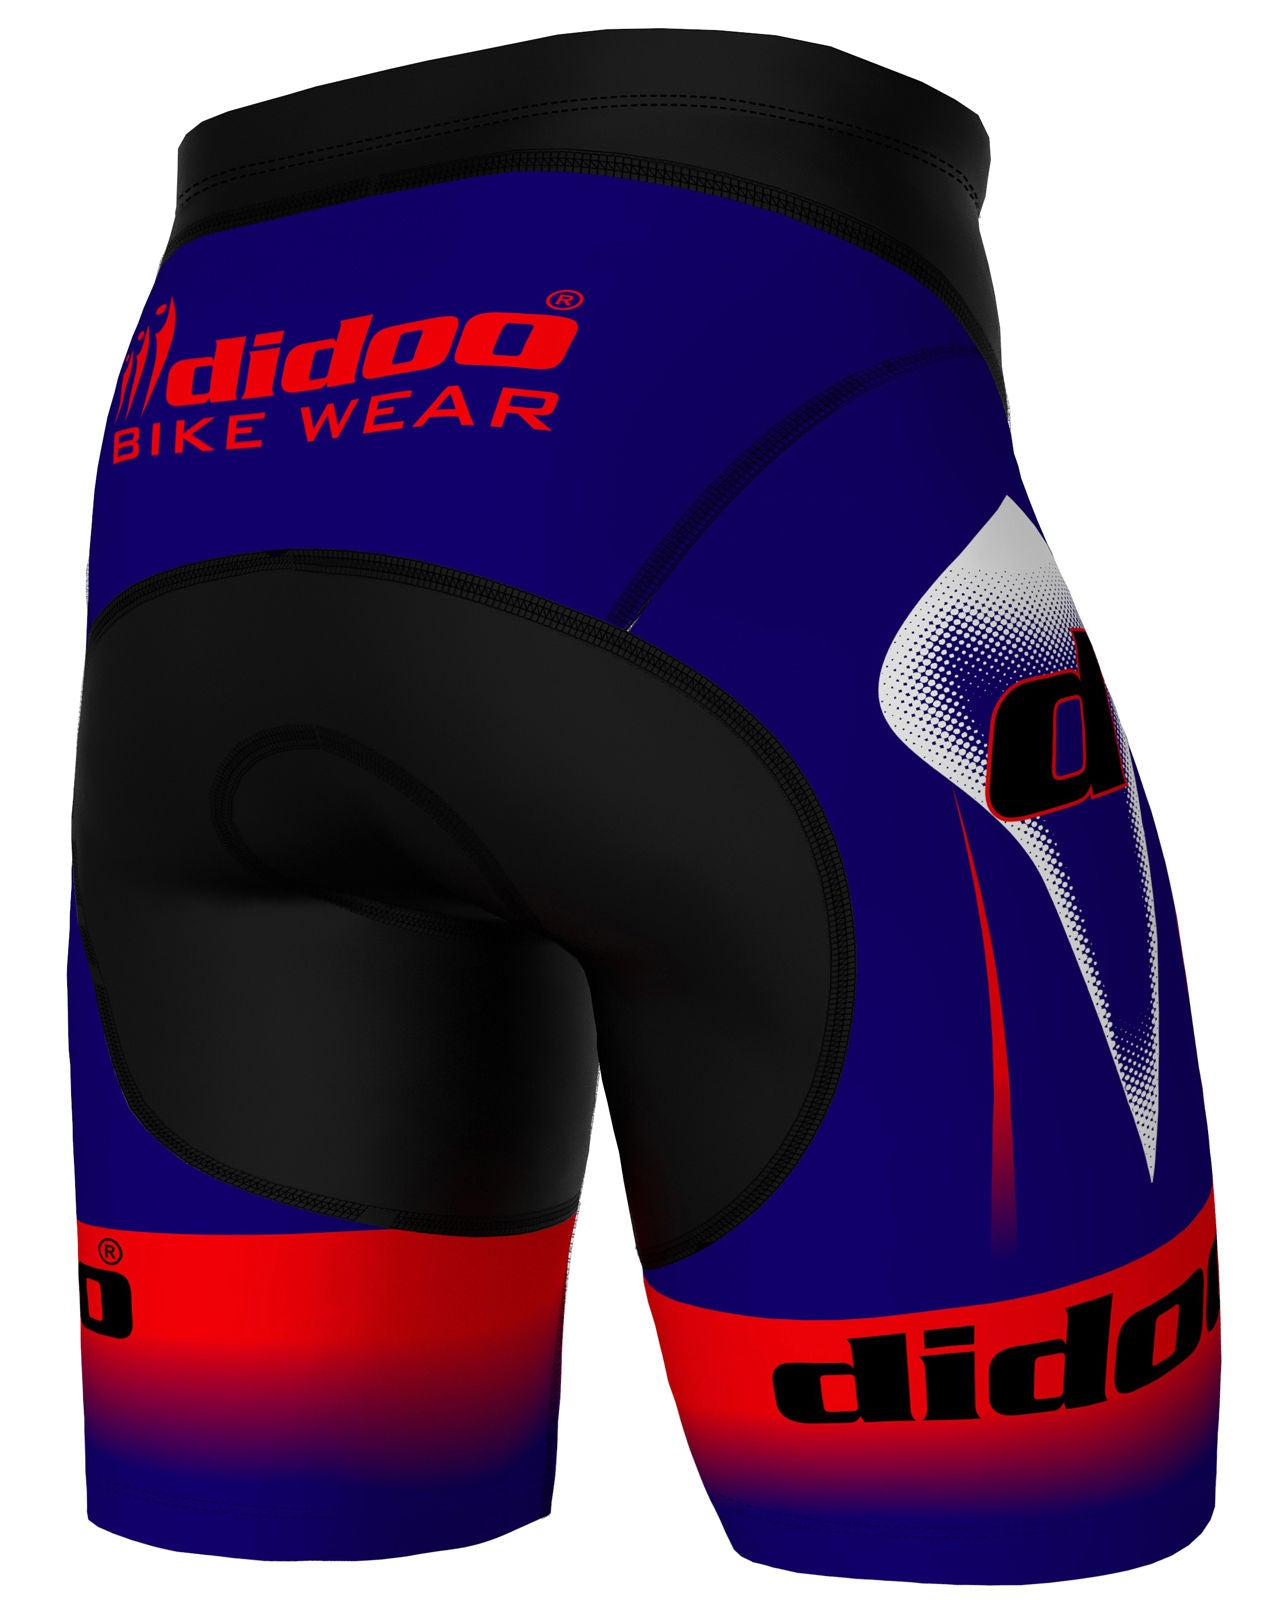 Back of Blue Red and Black Padded Cycling Shorts